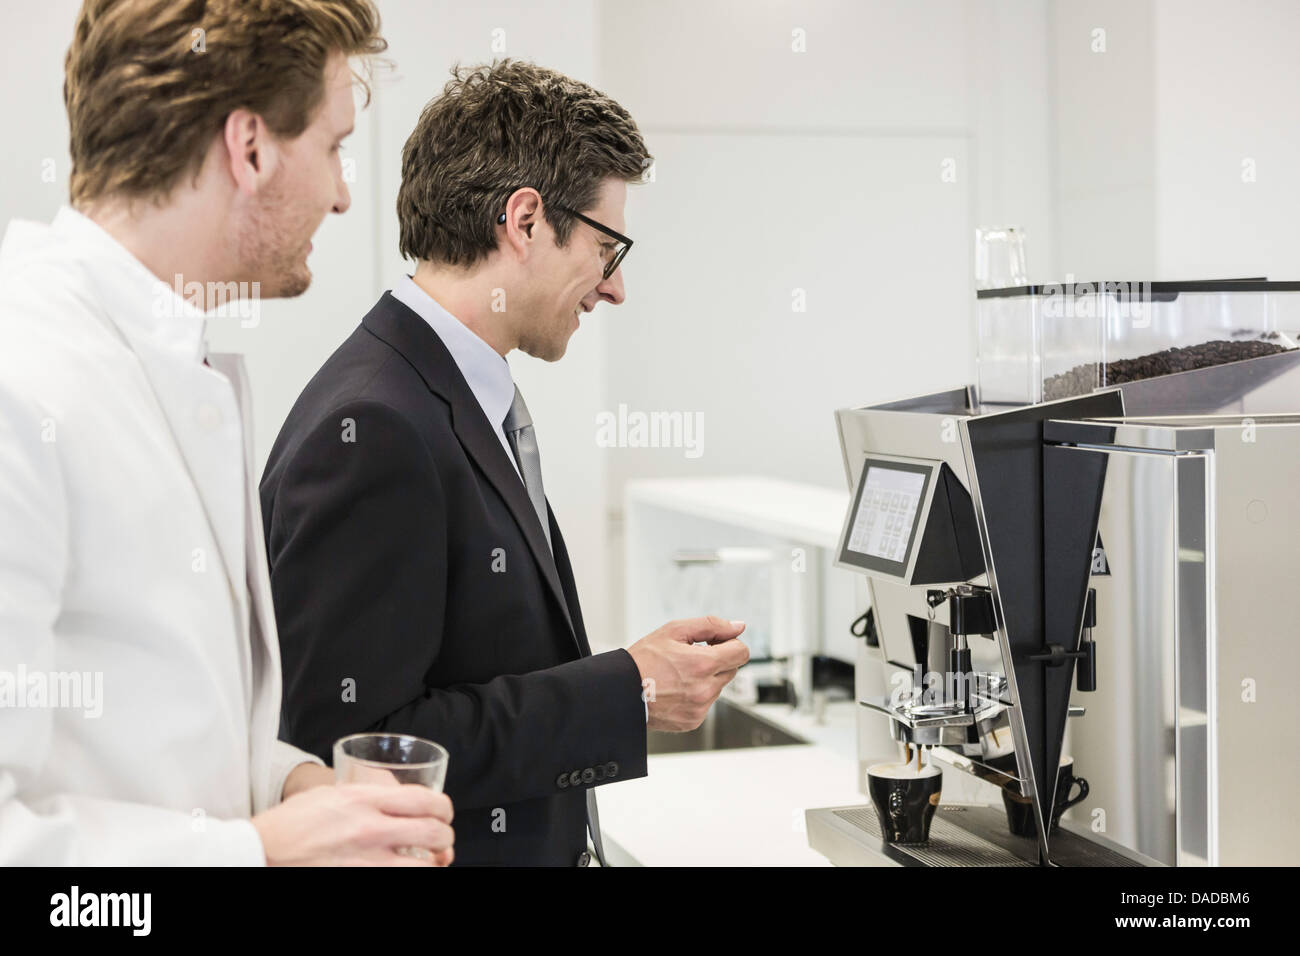 Man wearing business attire getting drink from coffee machine - Stock Image